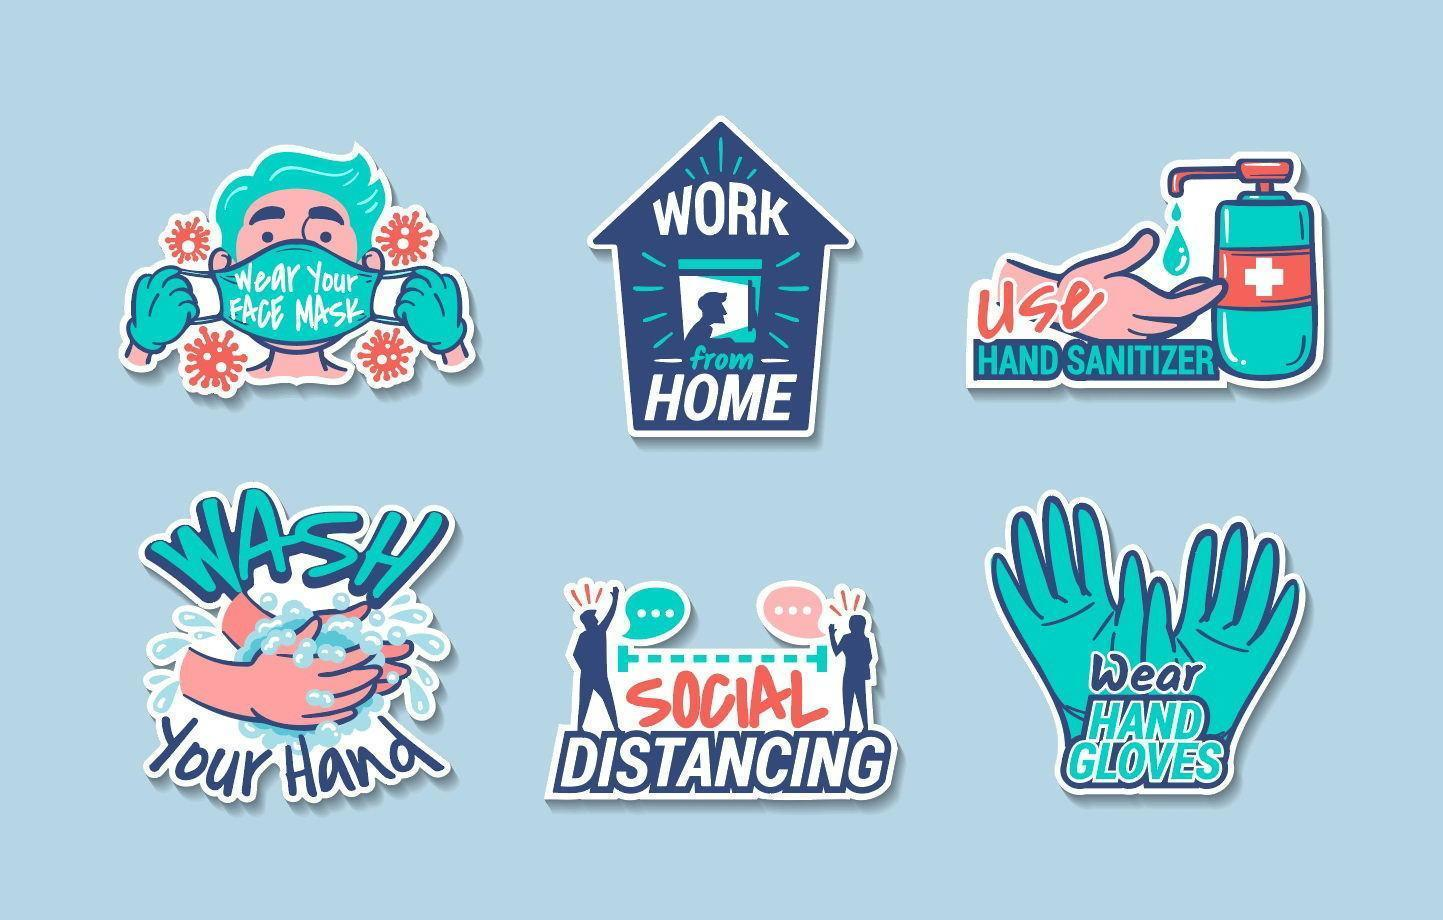 New Normal Protocol in Everyday Life Stickers vector